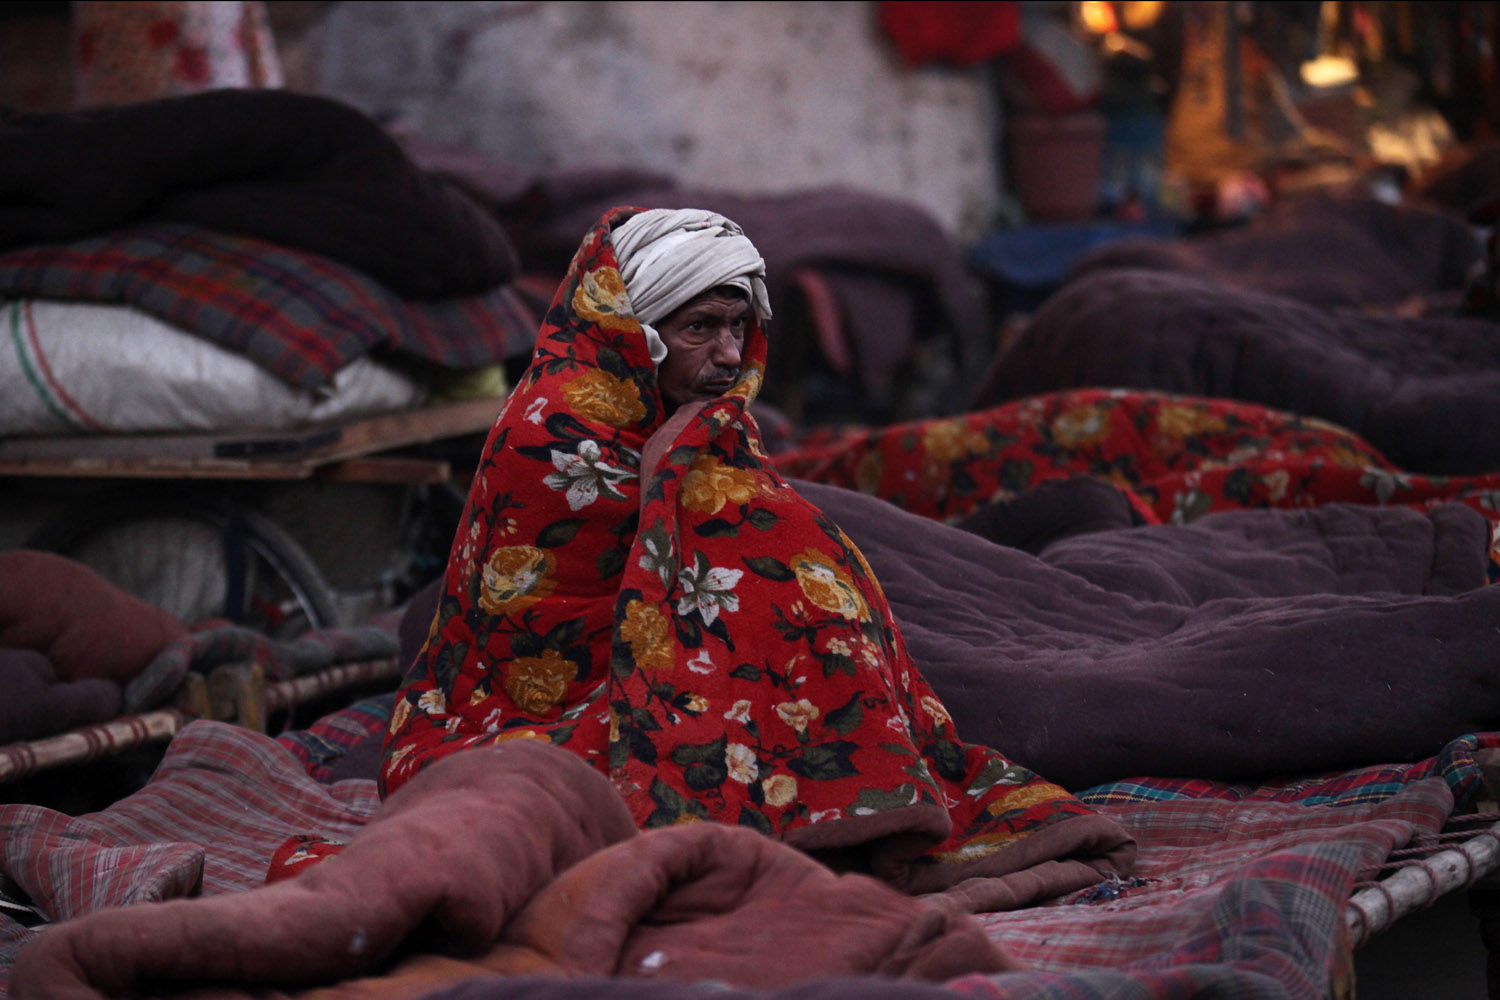 Jan. 2, 2014. An Indian daily worker is seen in an open area during a cold winter morning at the old quarters of Delhi, India.